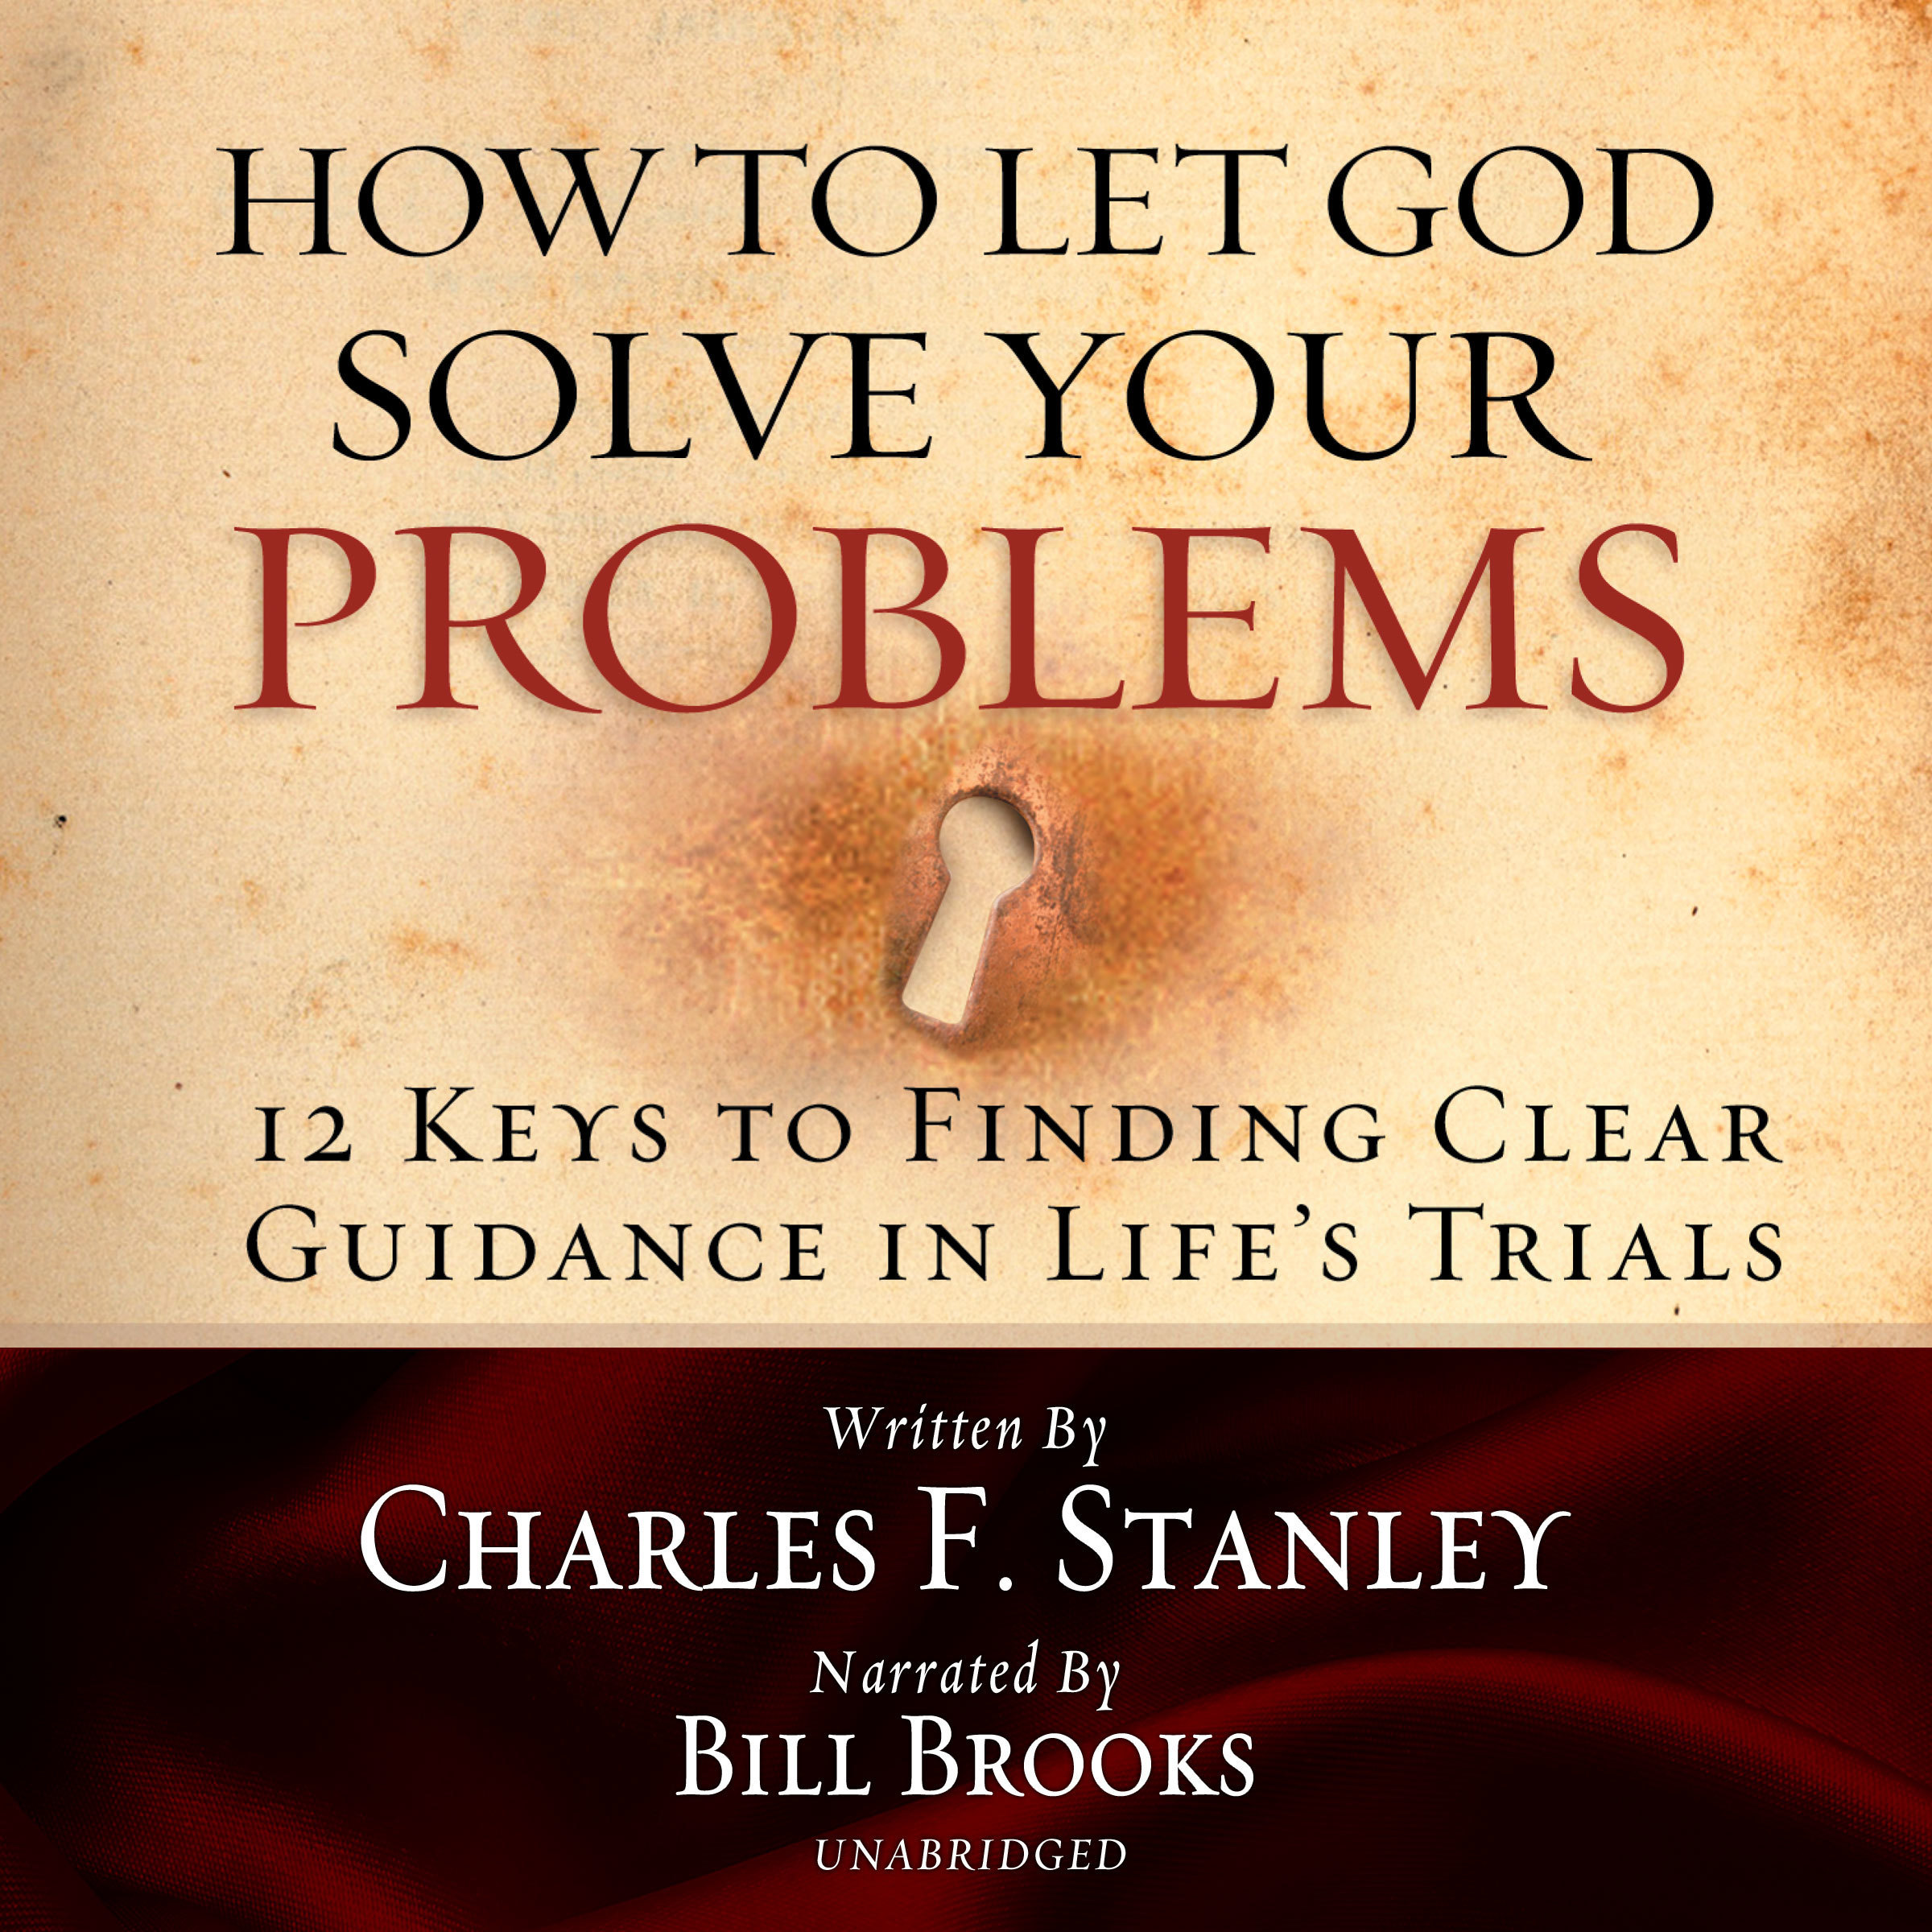 Printable How to Let God Solve Your Problems: 12 Keys for Finding Clear Guidance in Life's Trials Audiobook Cover Art